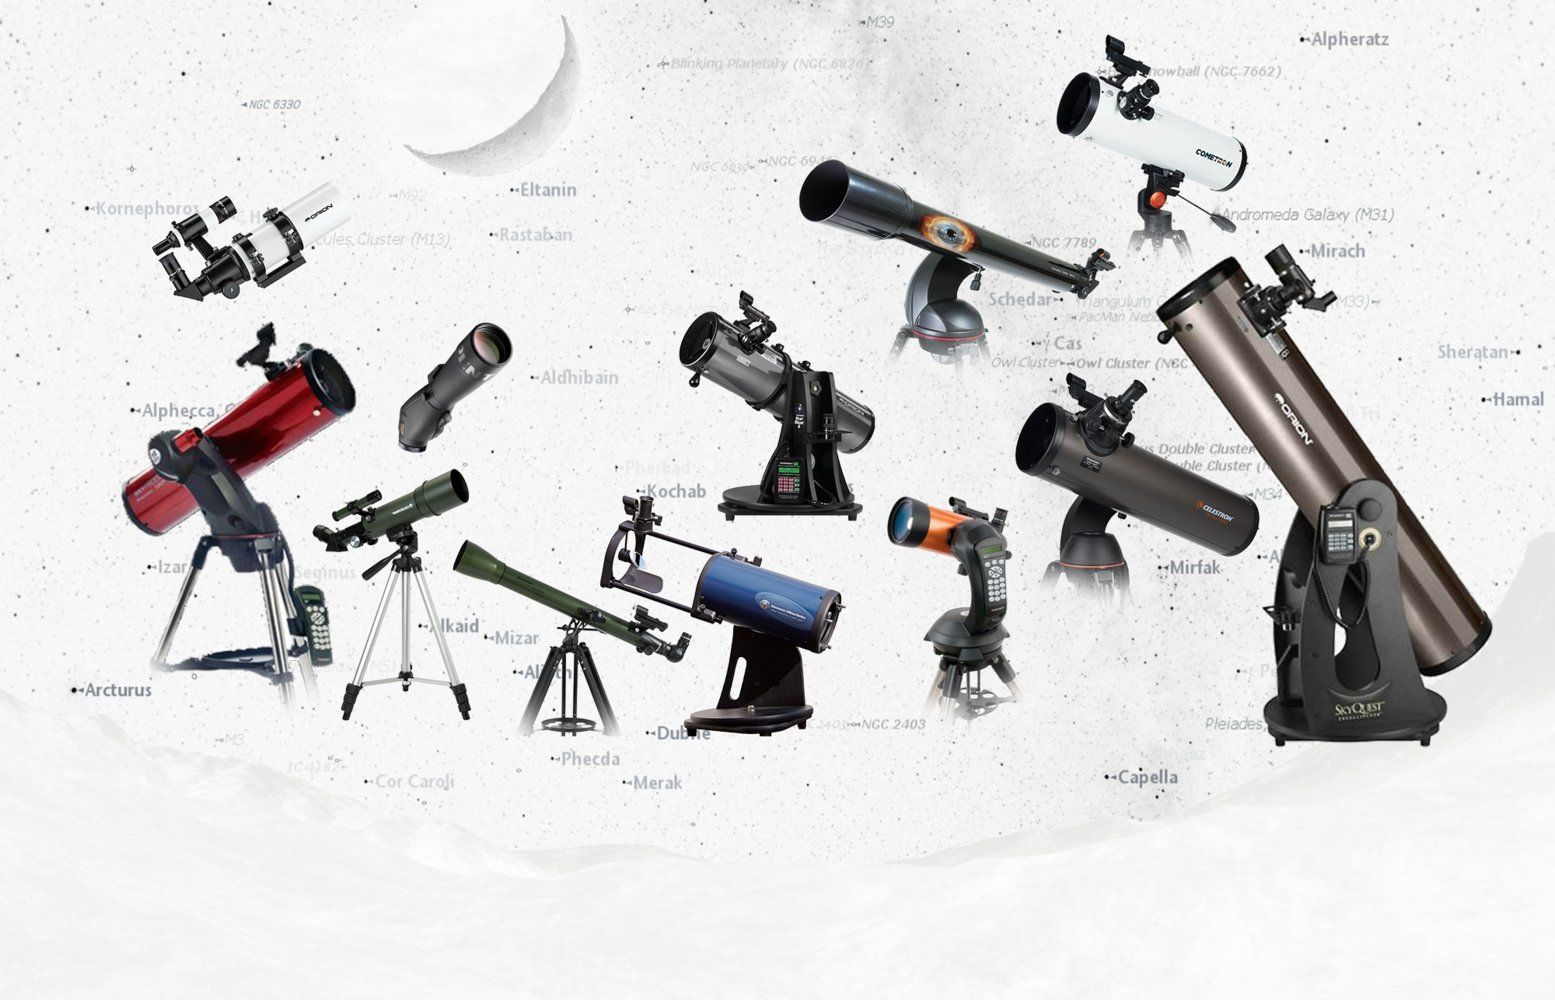 Which telescopes are worth your money? https://t.co/x6YzbTHih0 https://t.co/pXZSHQAKqu